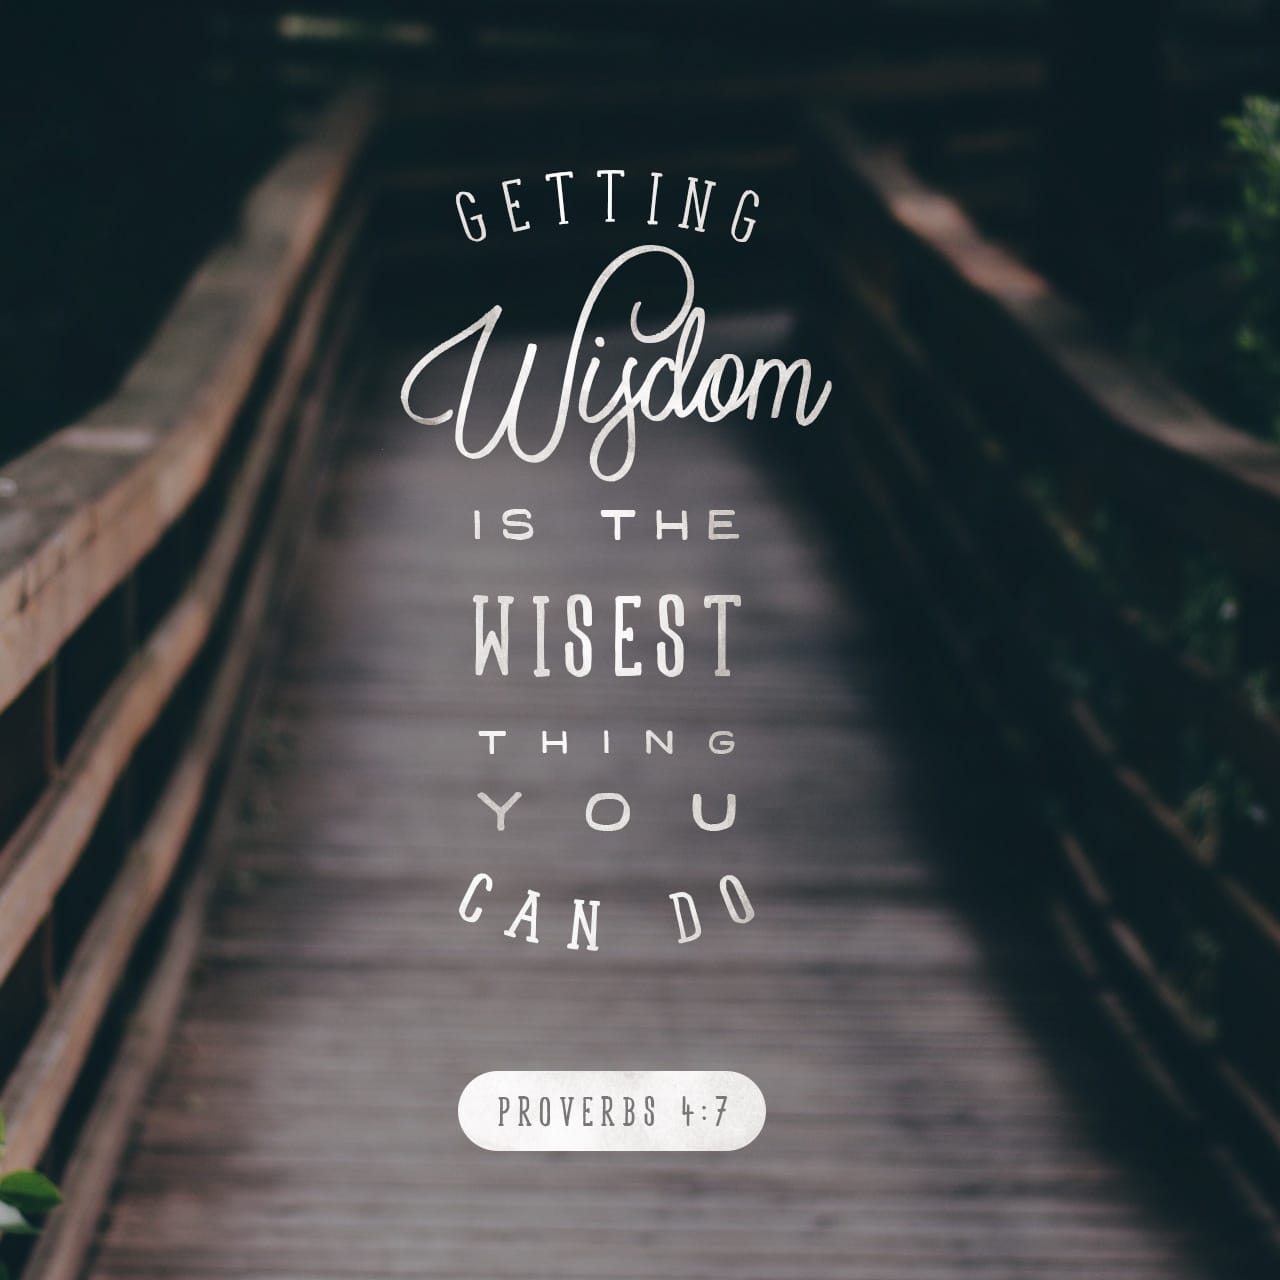 Proverbs 4:7 Wisdom is the principal thing; therefore get wisdom: and with all thy getting get understanding. | King James Version (KJV)